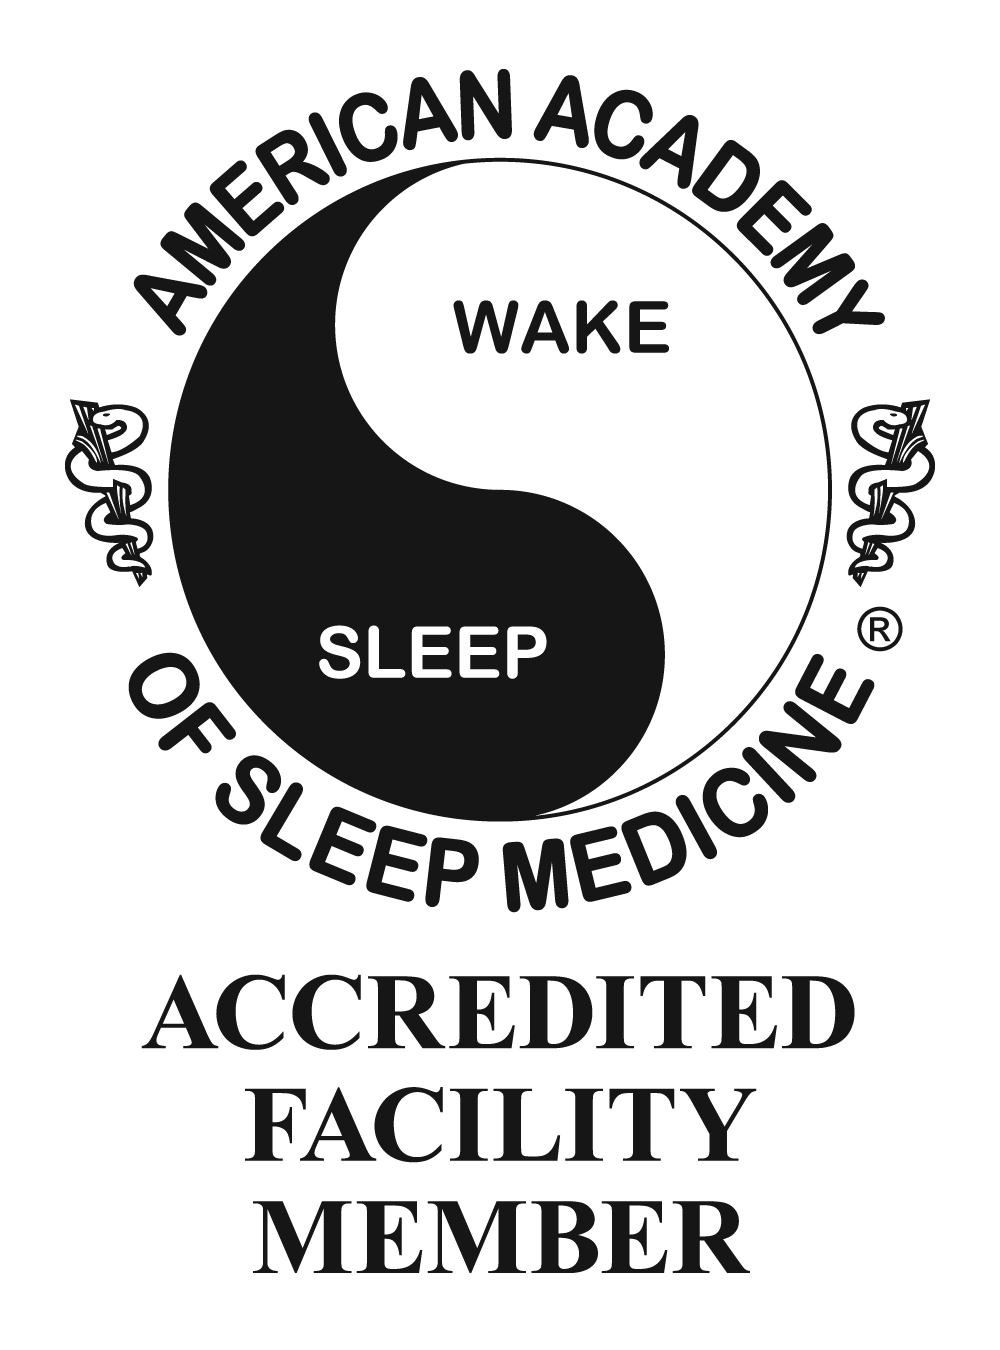 American academy of sleep medicine accredited facility member with a ying yang that says wake and sleep